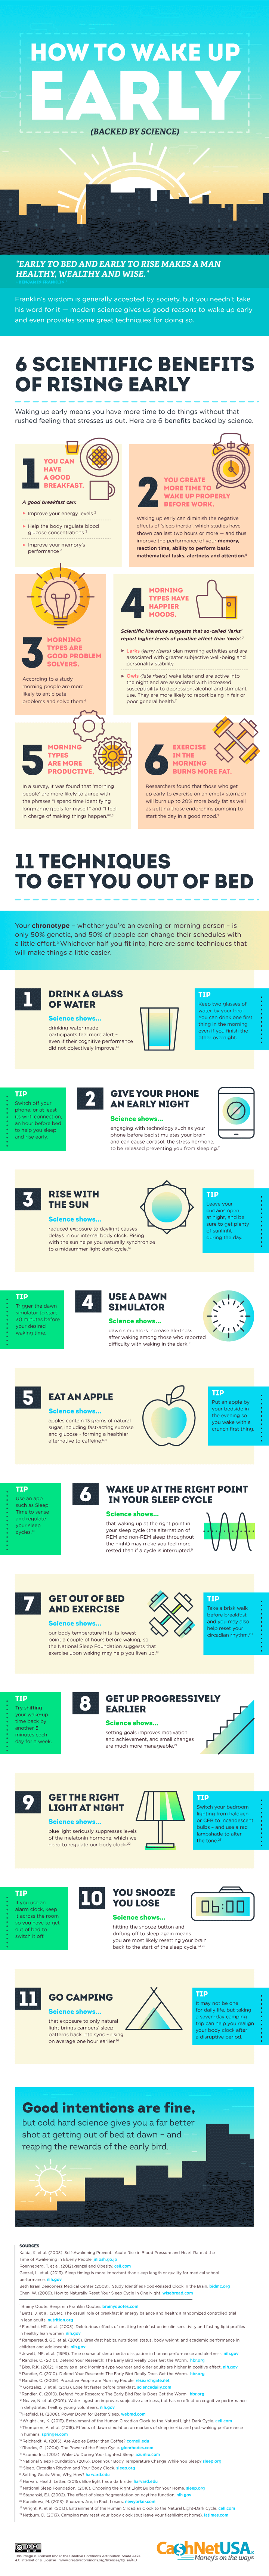 How to Wake Up Early (INFOGRAPHIC)